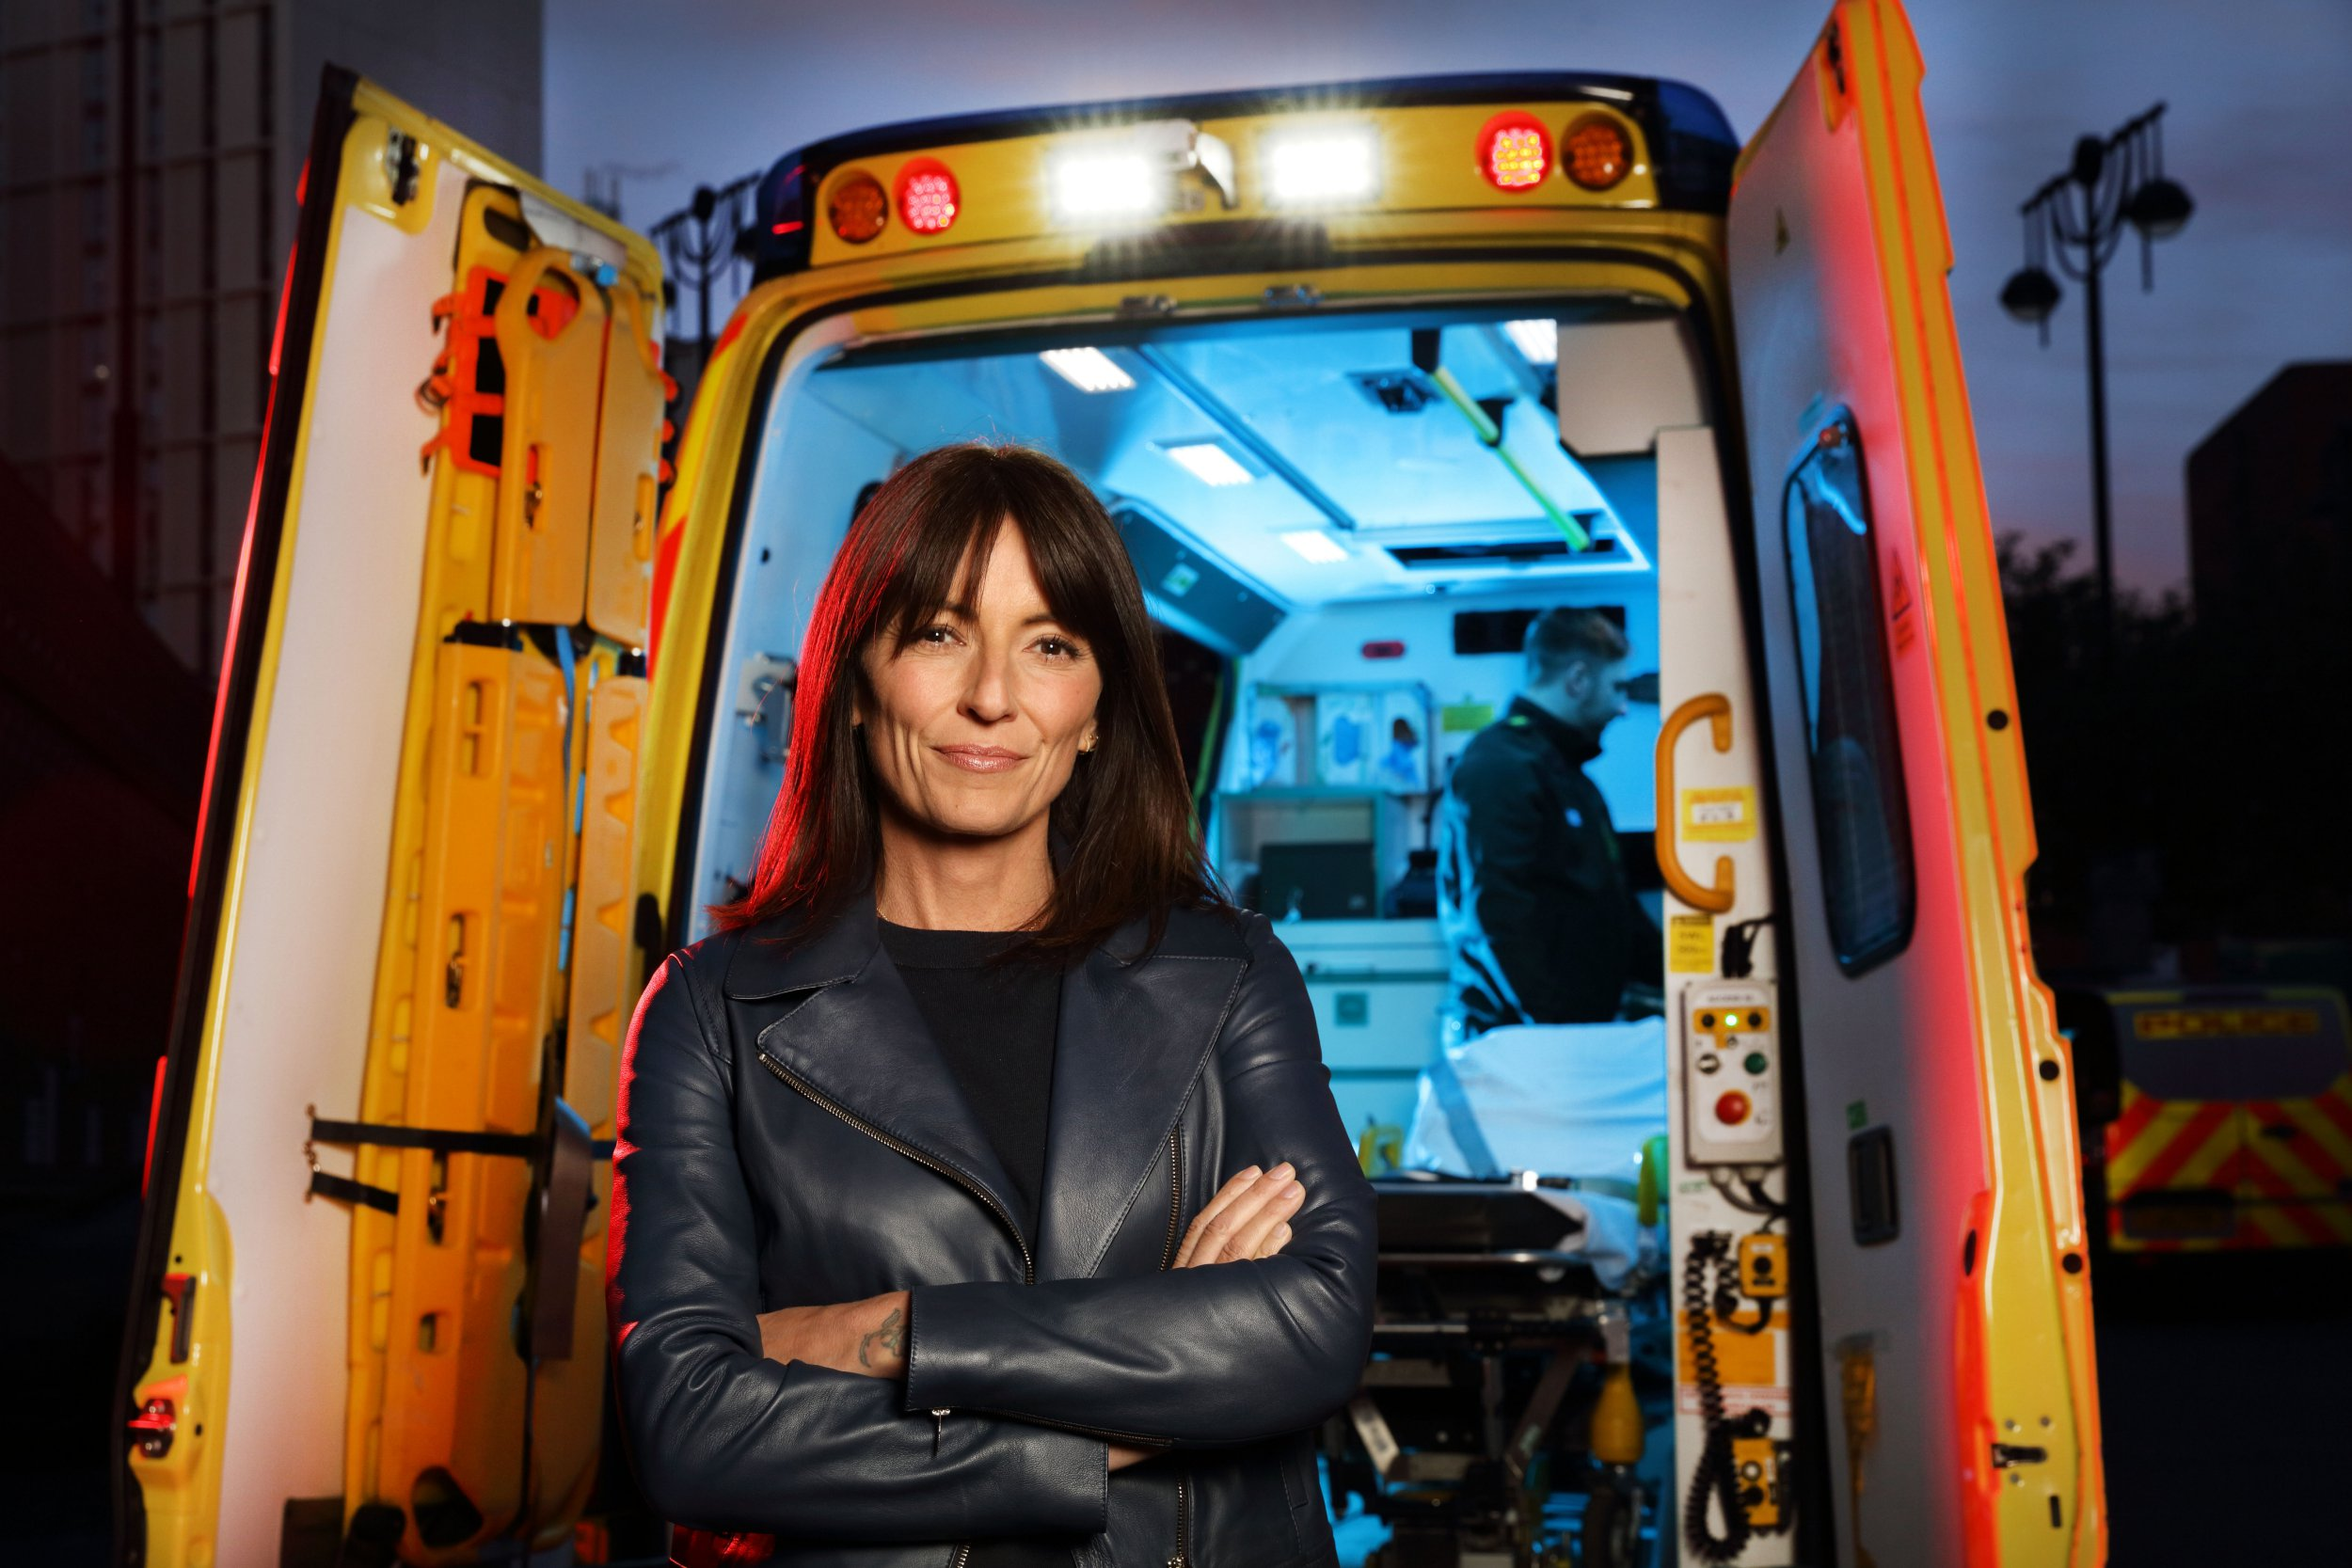 Davina McCall reveals she witnessed granny 'sever her toes' in horrific gardening accident – prompting a phobia of blood